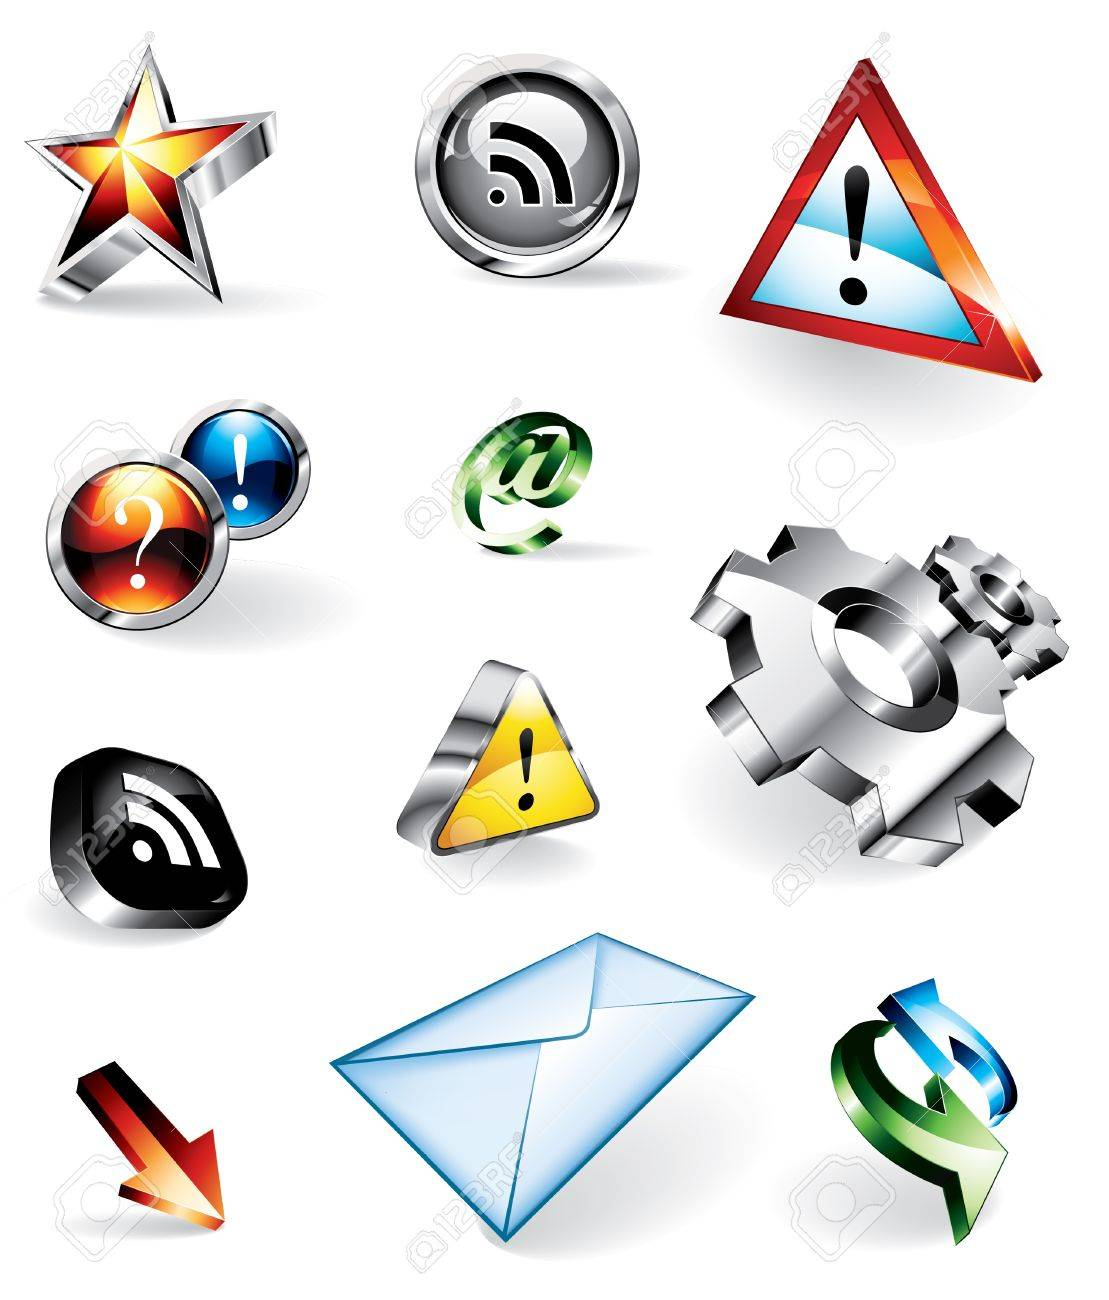 Set of 11 shiny vector icons for websites: RSS feed, contact, warnings, FAQ, refresh, add as favourite Stock Vector - 11646345